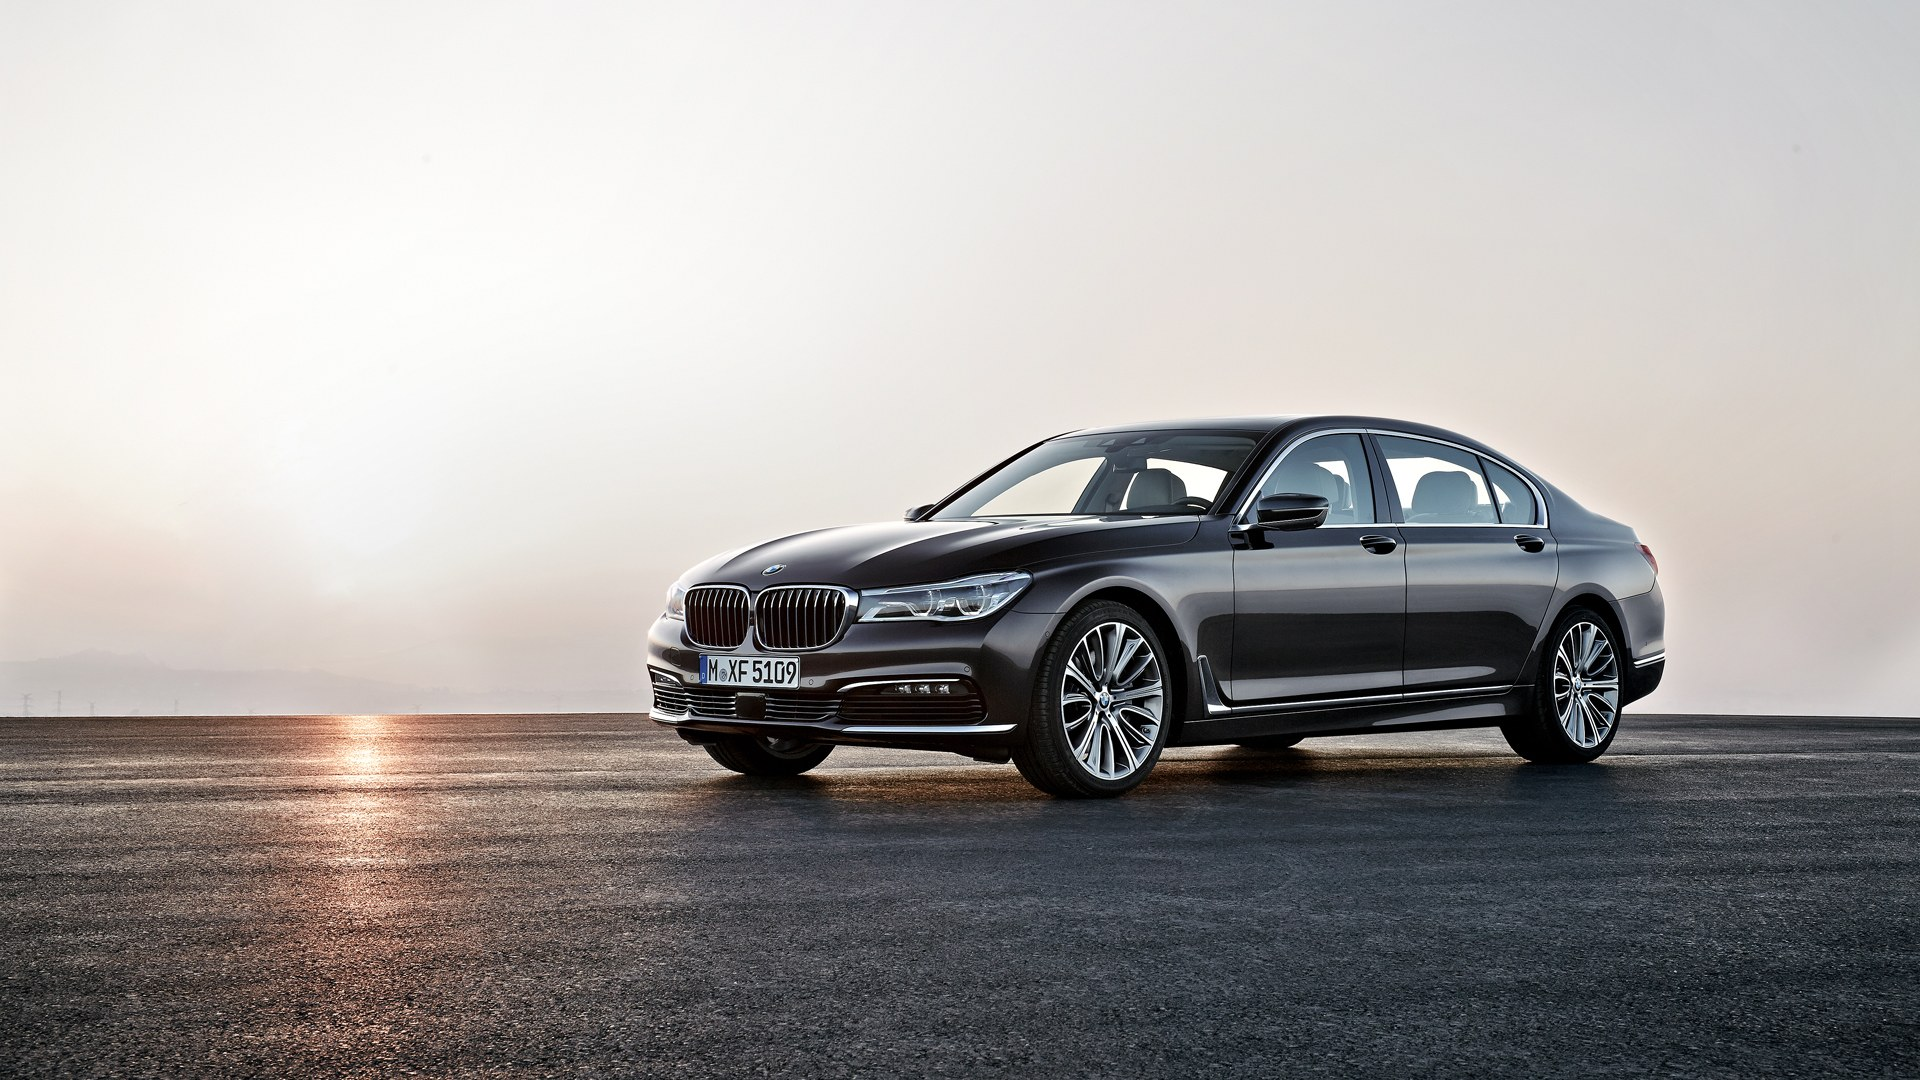 bmw 7 series wallpapers high quality download free. Black Bedroom Furniture Sets. Home Design Ideas